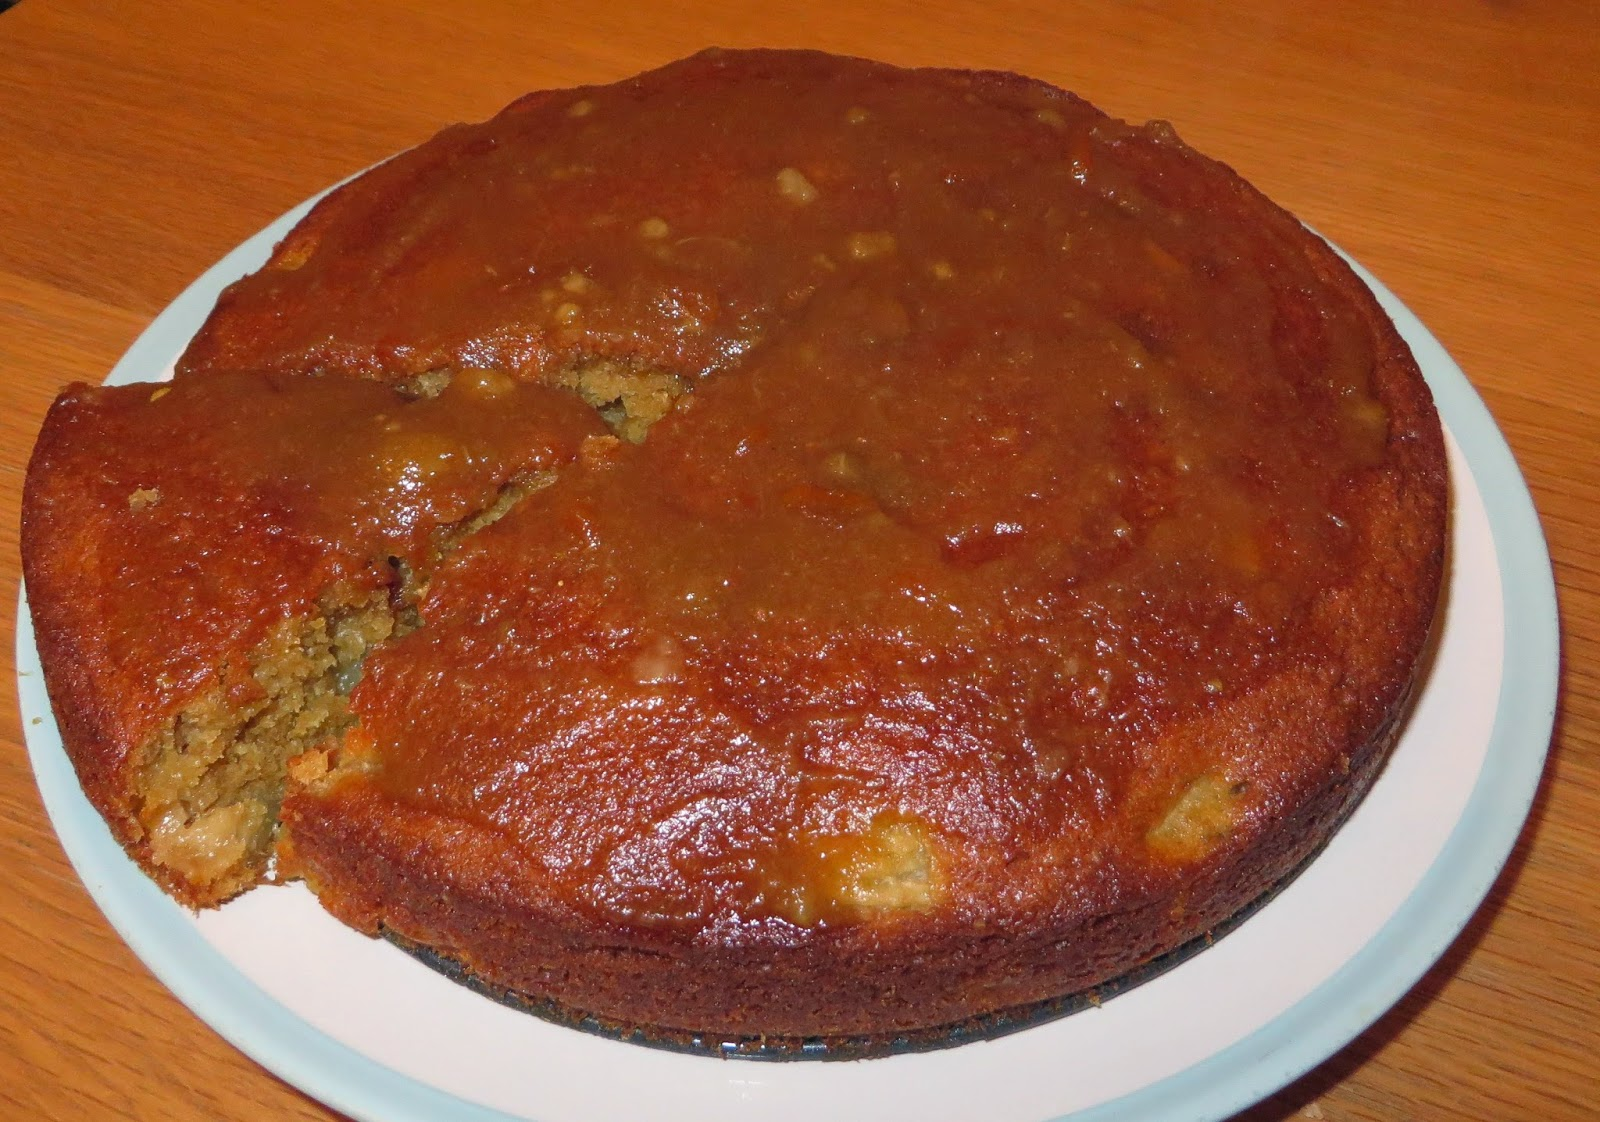 Pear and Ginger Cake, Pear and Ginger Glaze Cake, Easy, Baking, Cake, Recipe, Erins Ever After